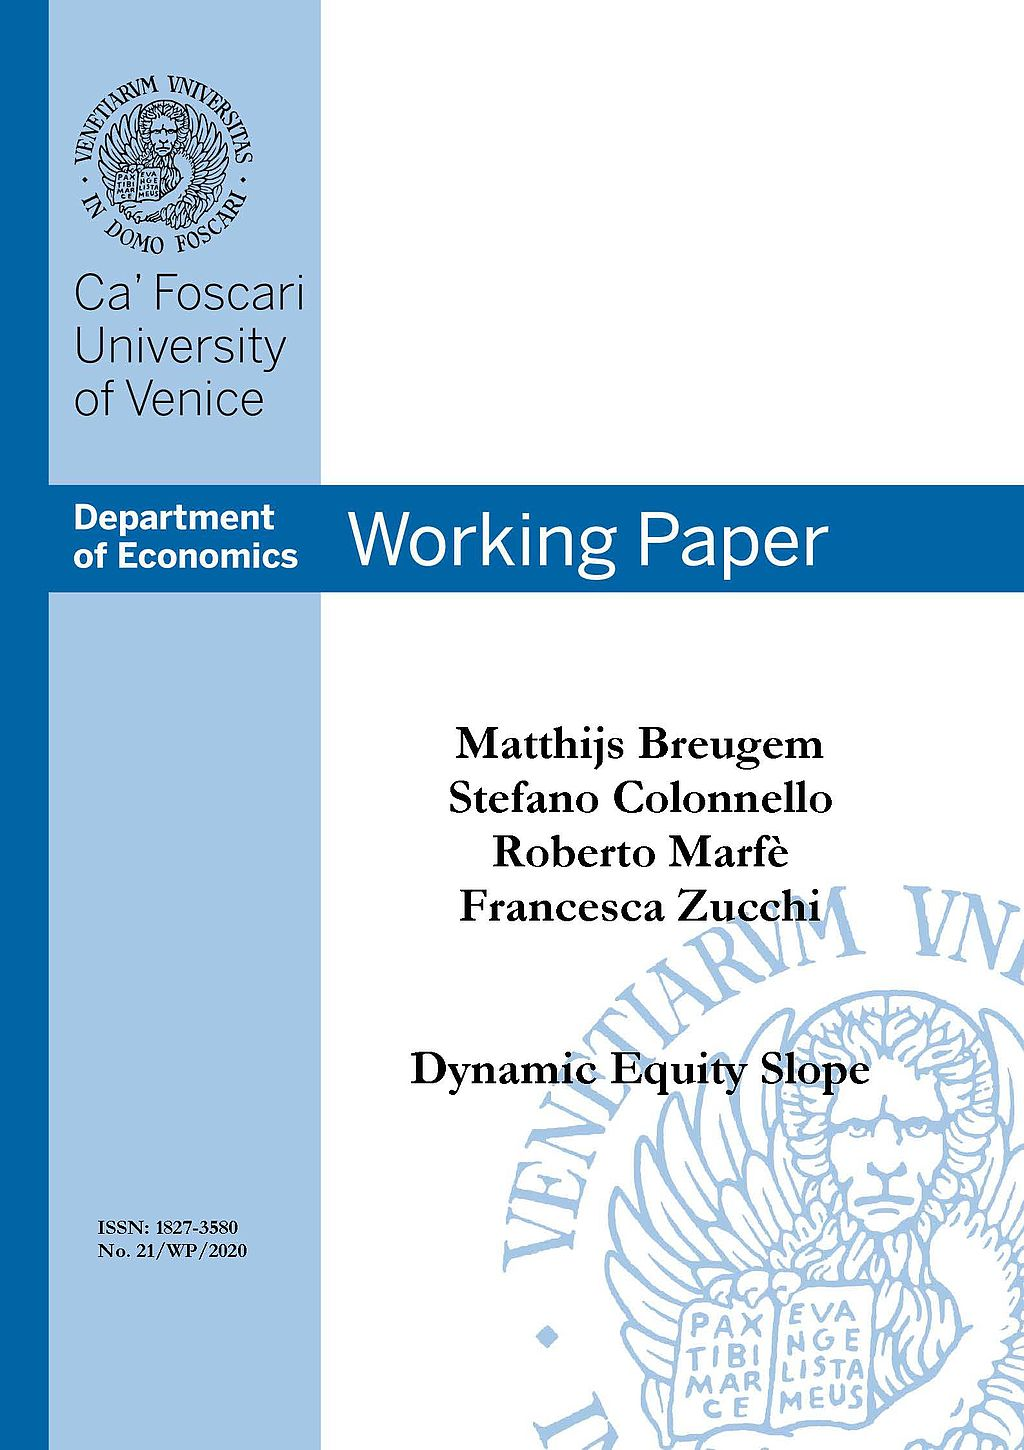 cover_2020-21_WP_DSE_breugem_colonello_marfe_zucchi.jpg